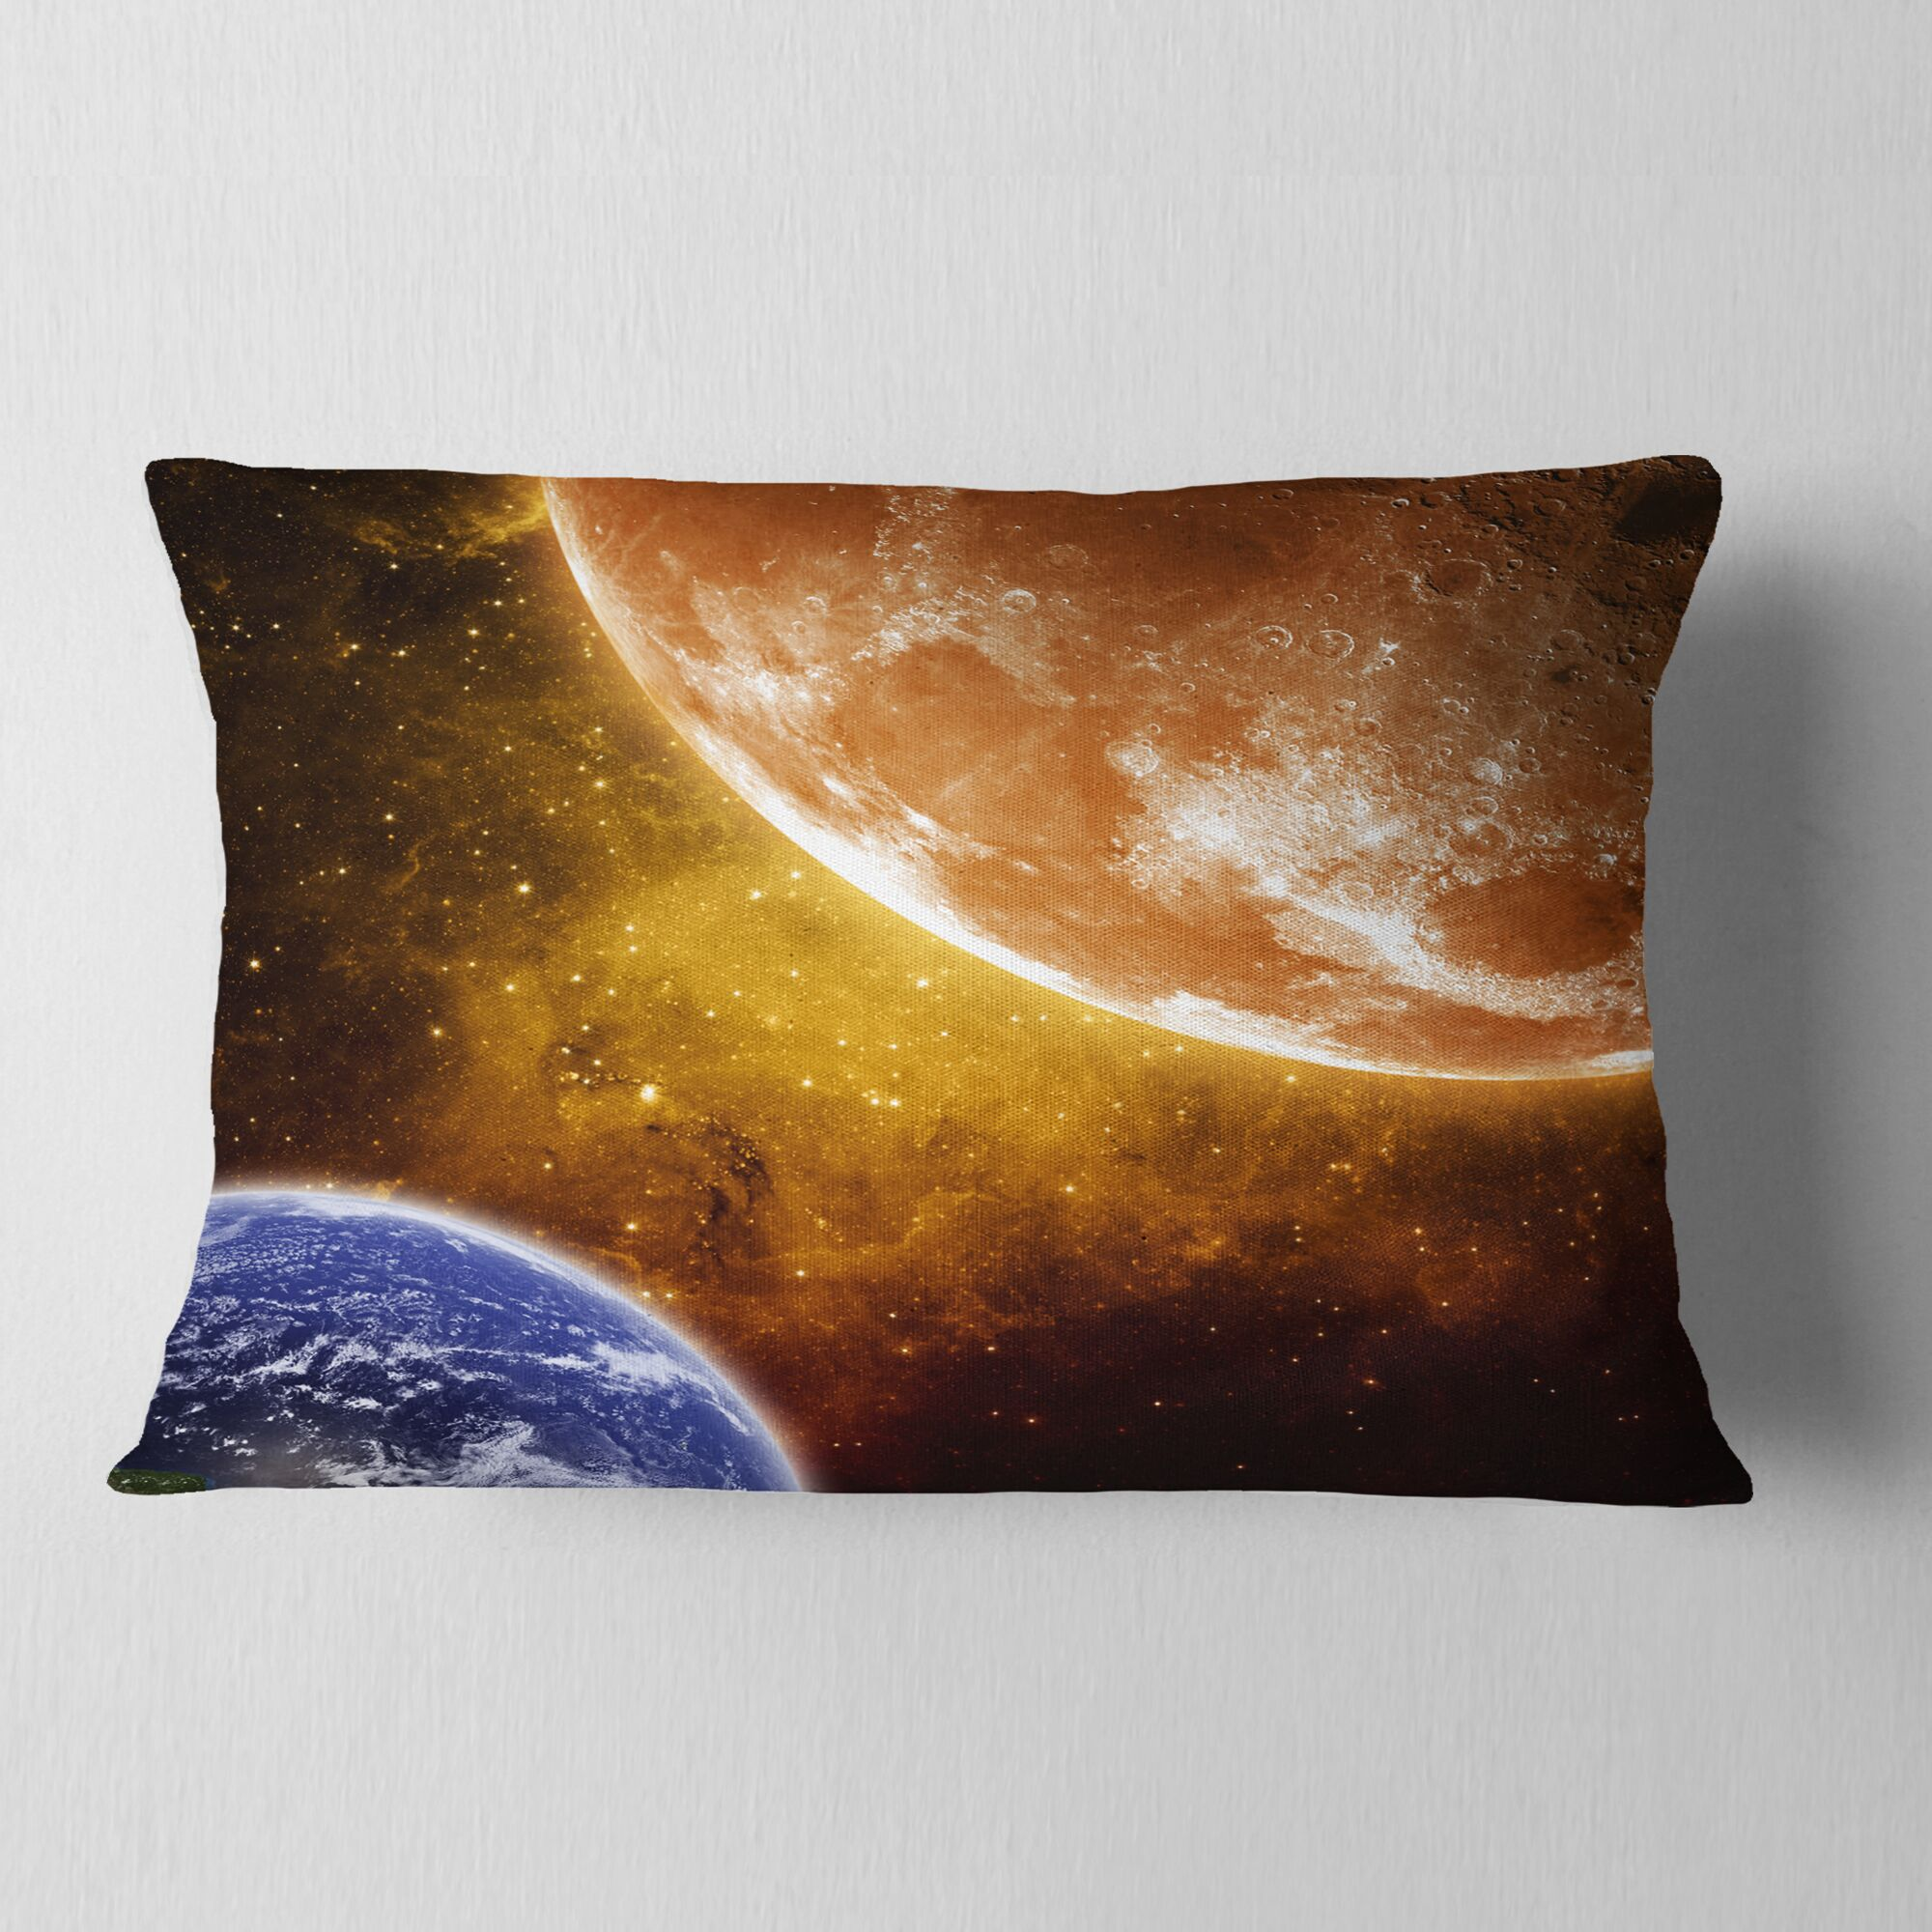 Spacescape Earth and Moon Lumbar Pillow